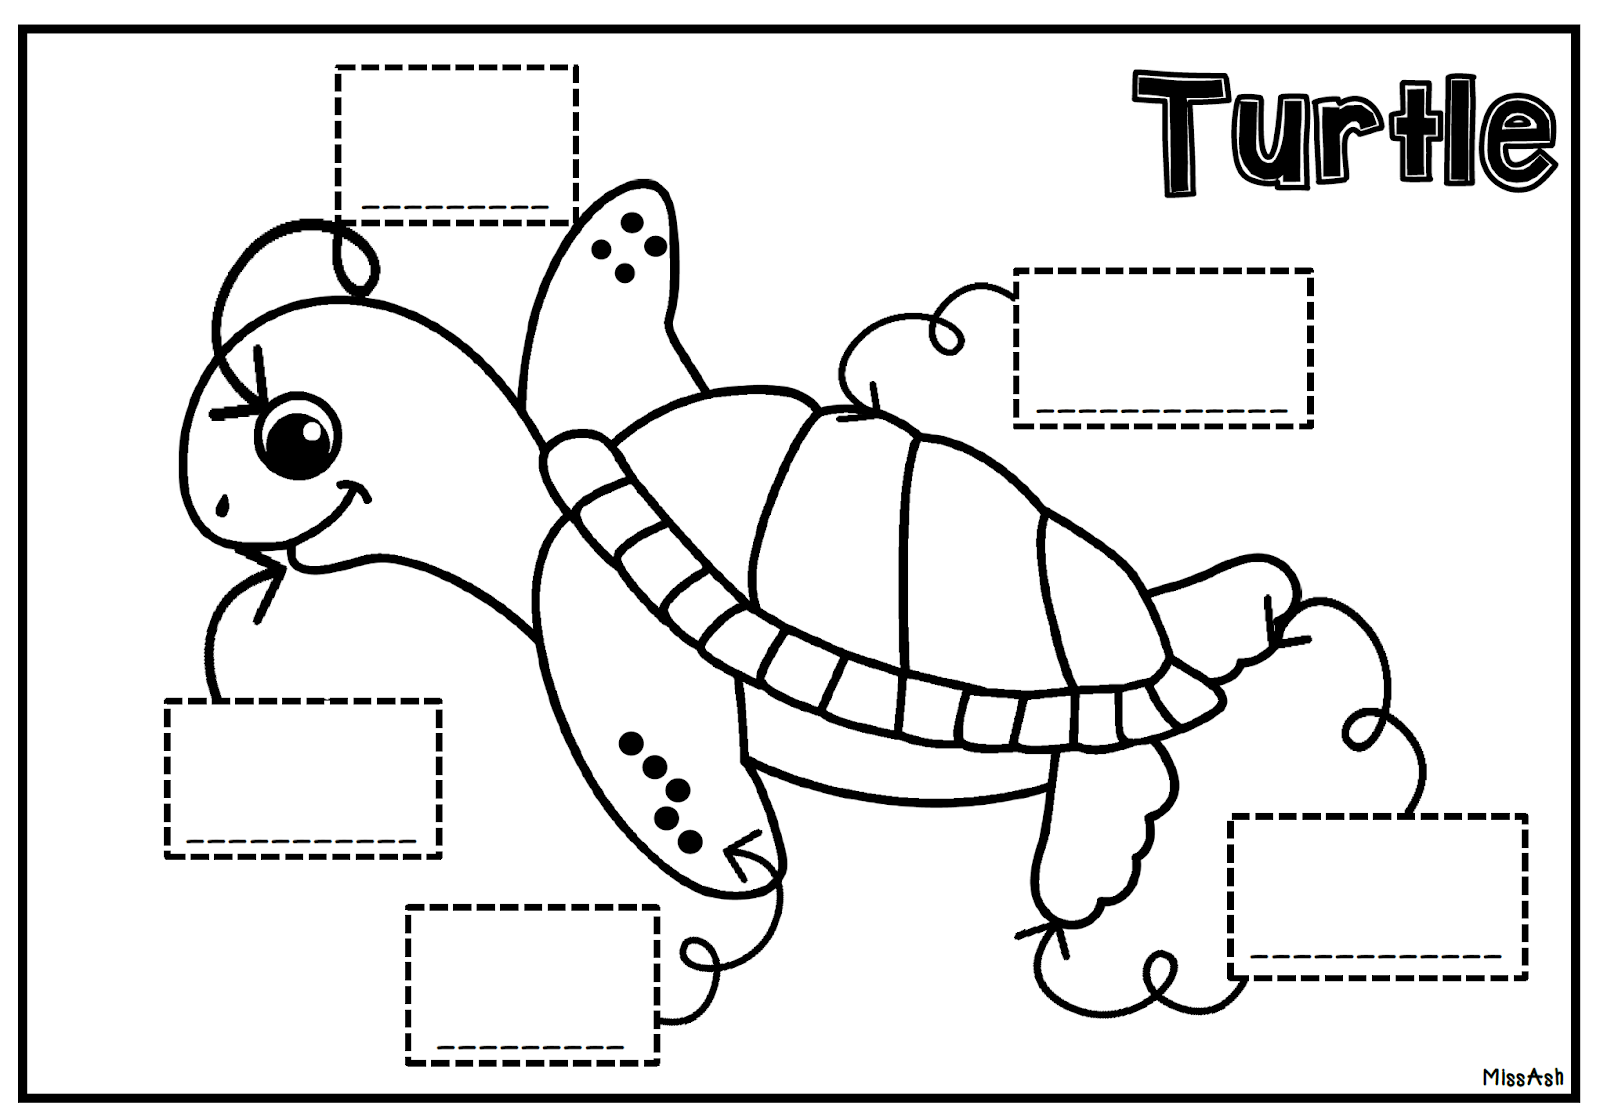 Hare Turtle Preschool Worksheet